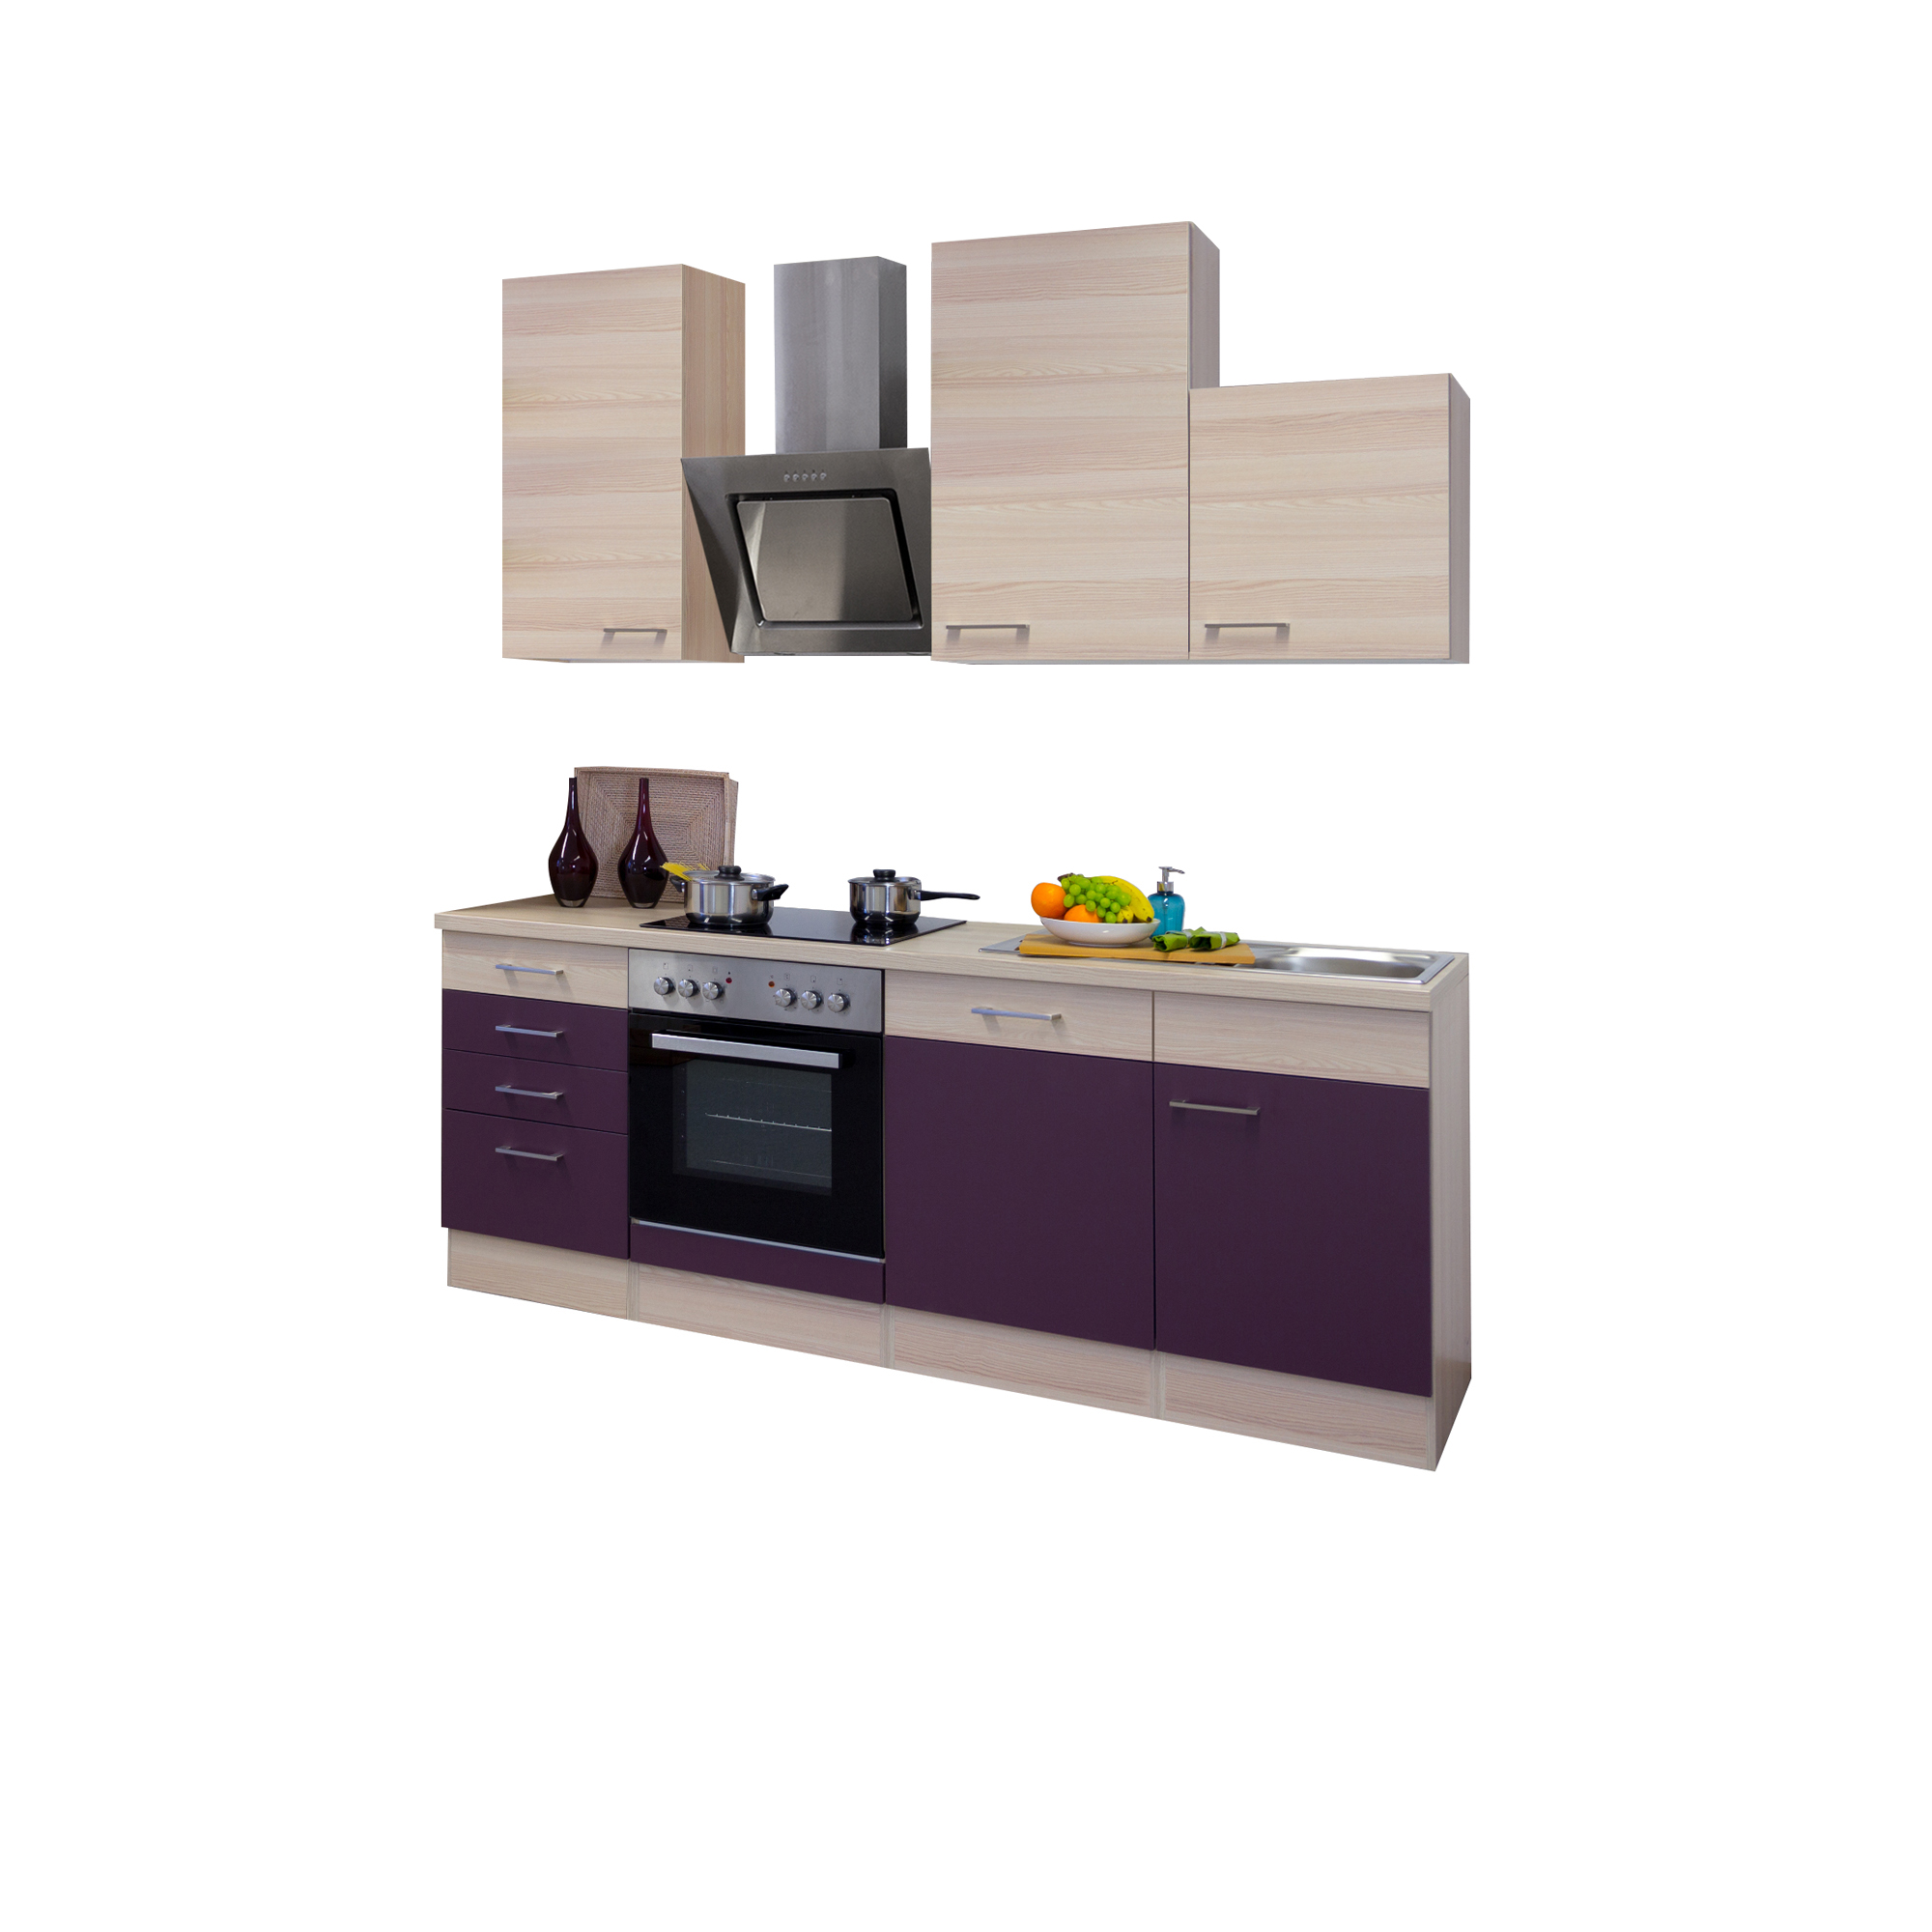 k chenzeile focus k che mit edelstahl abzugshaube breite 220 cm aubergine k che k chenzeilen. Black Bedroom Furniture Sets. Home Design Ideas